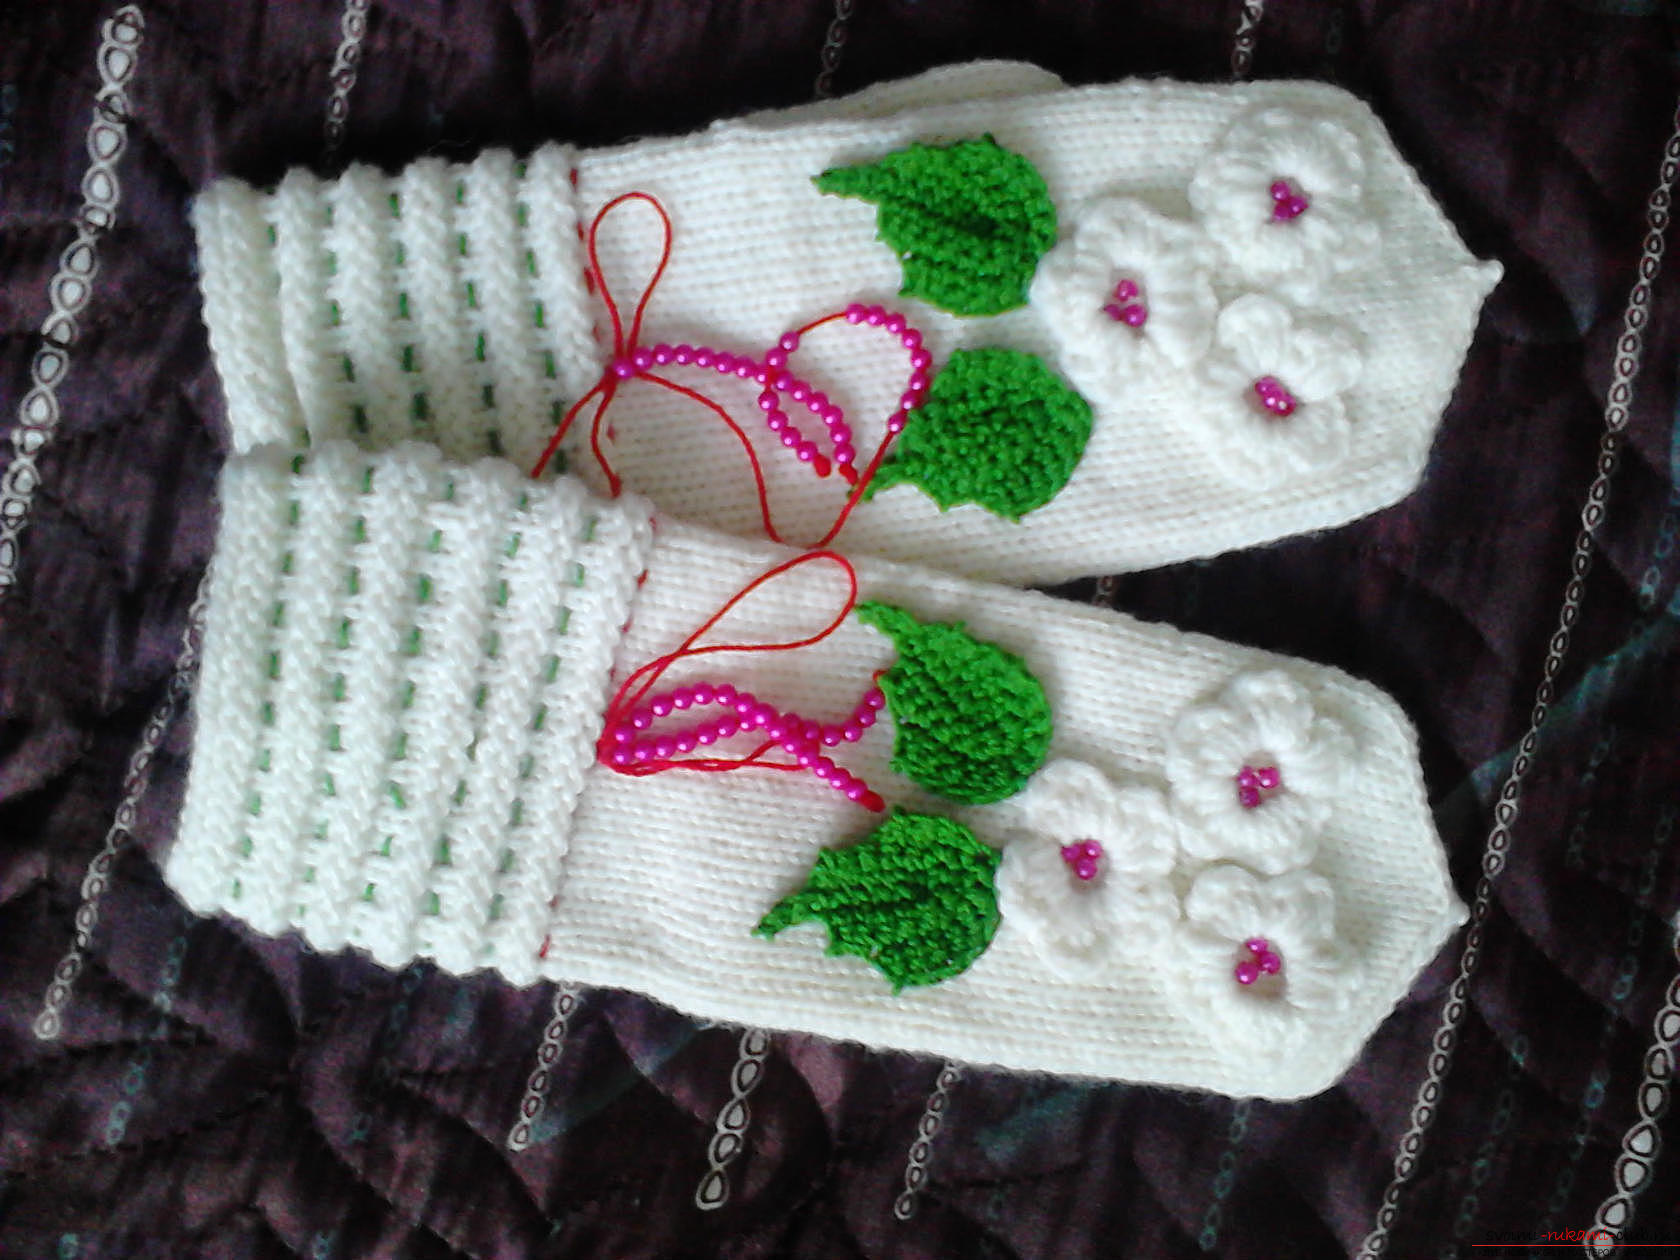 Warm knitted mittens, decorated with embroidery and beads. Photo №1